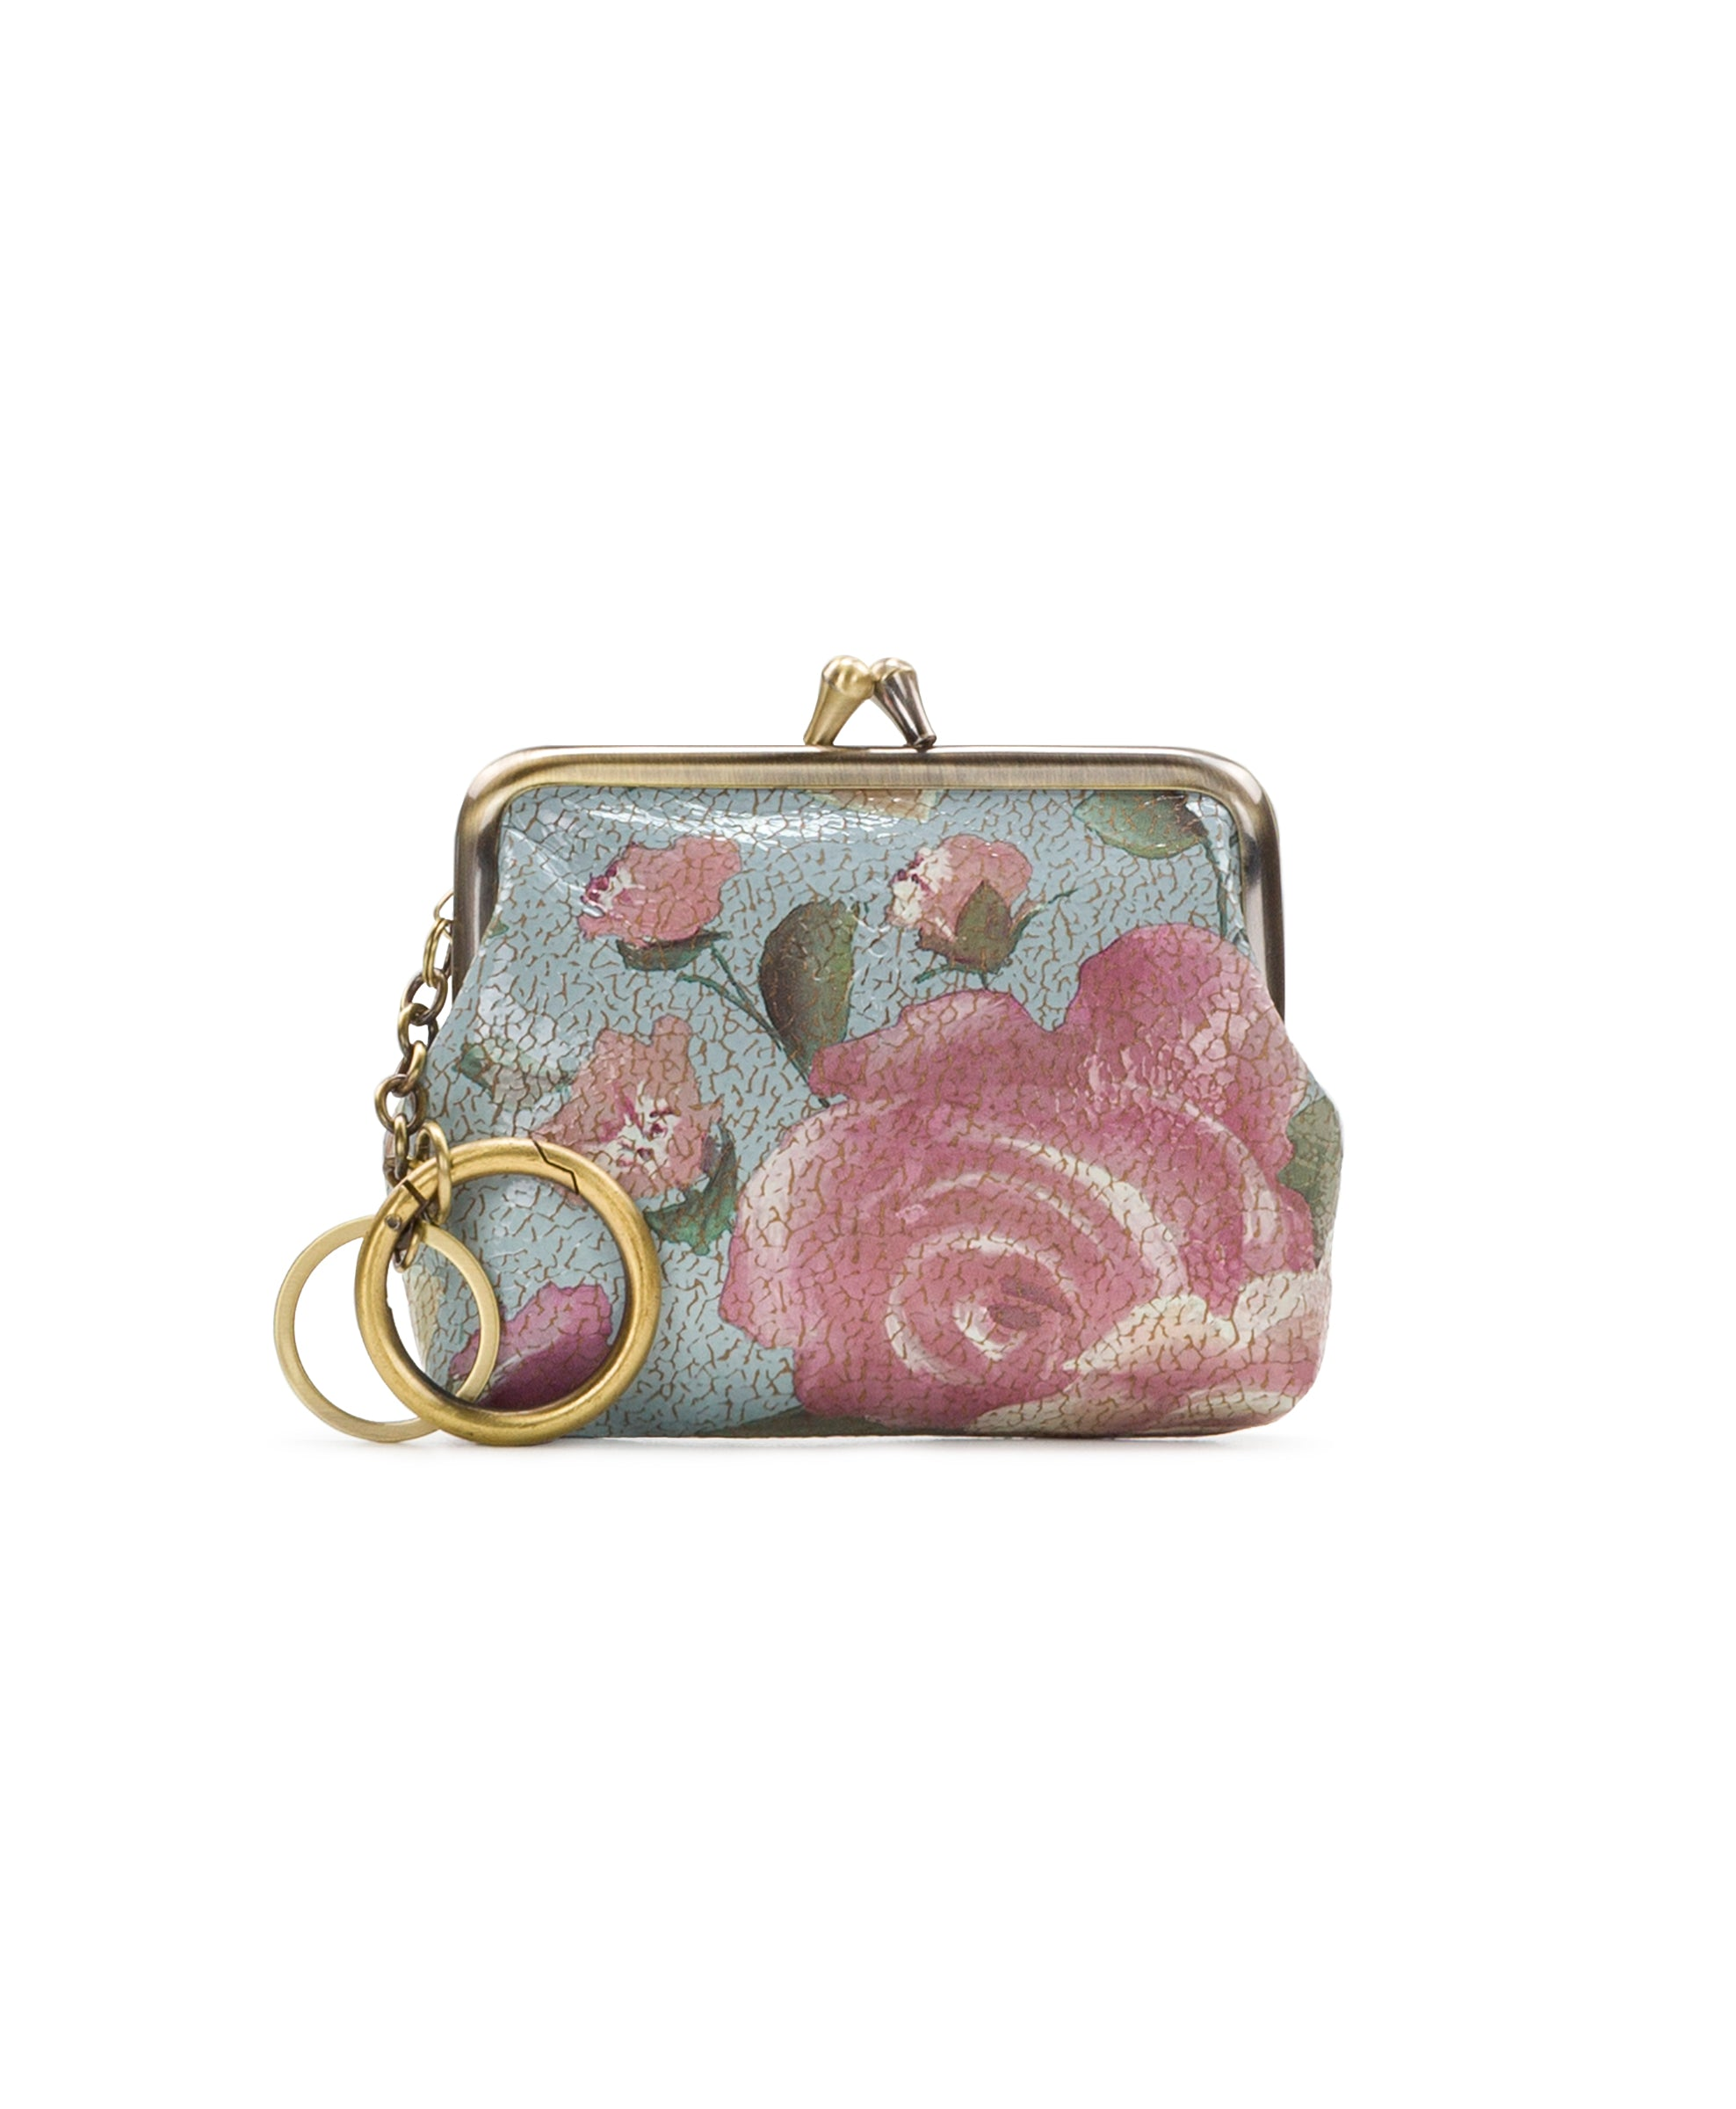 Borse Coin Purse - Crackled Rose